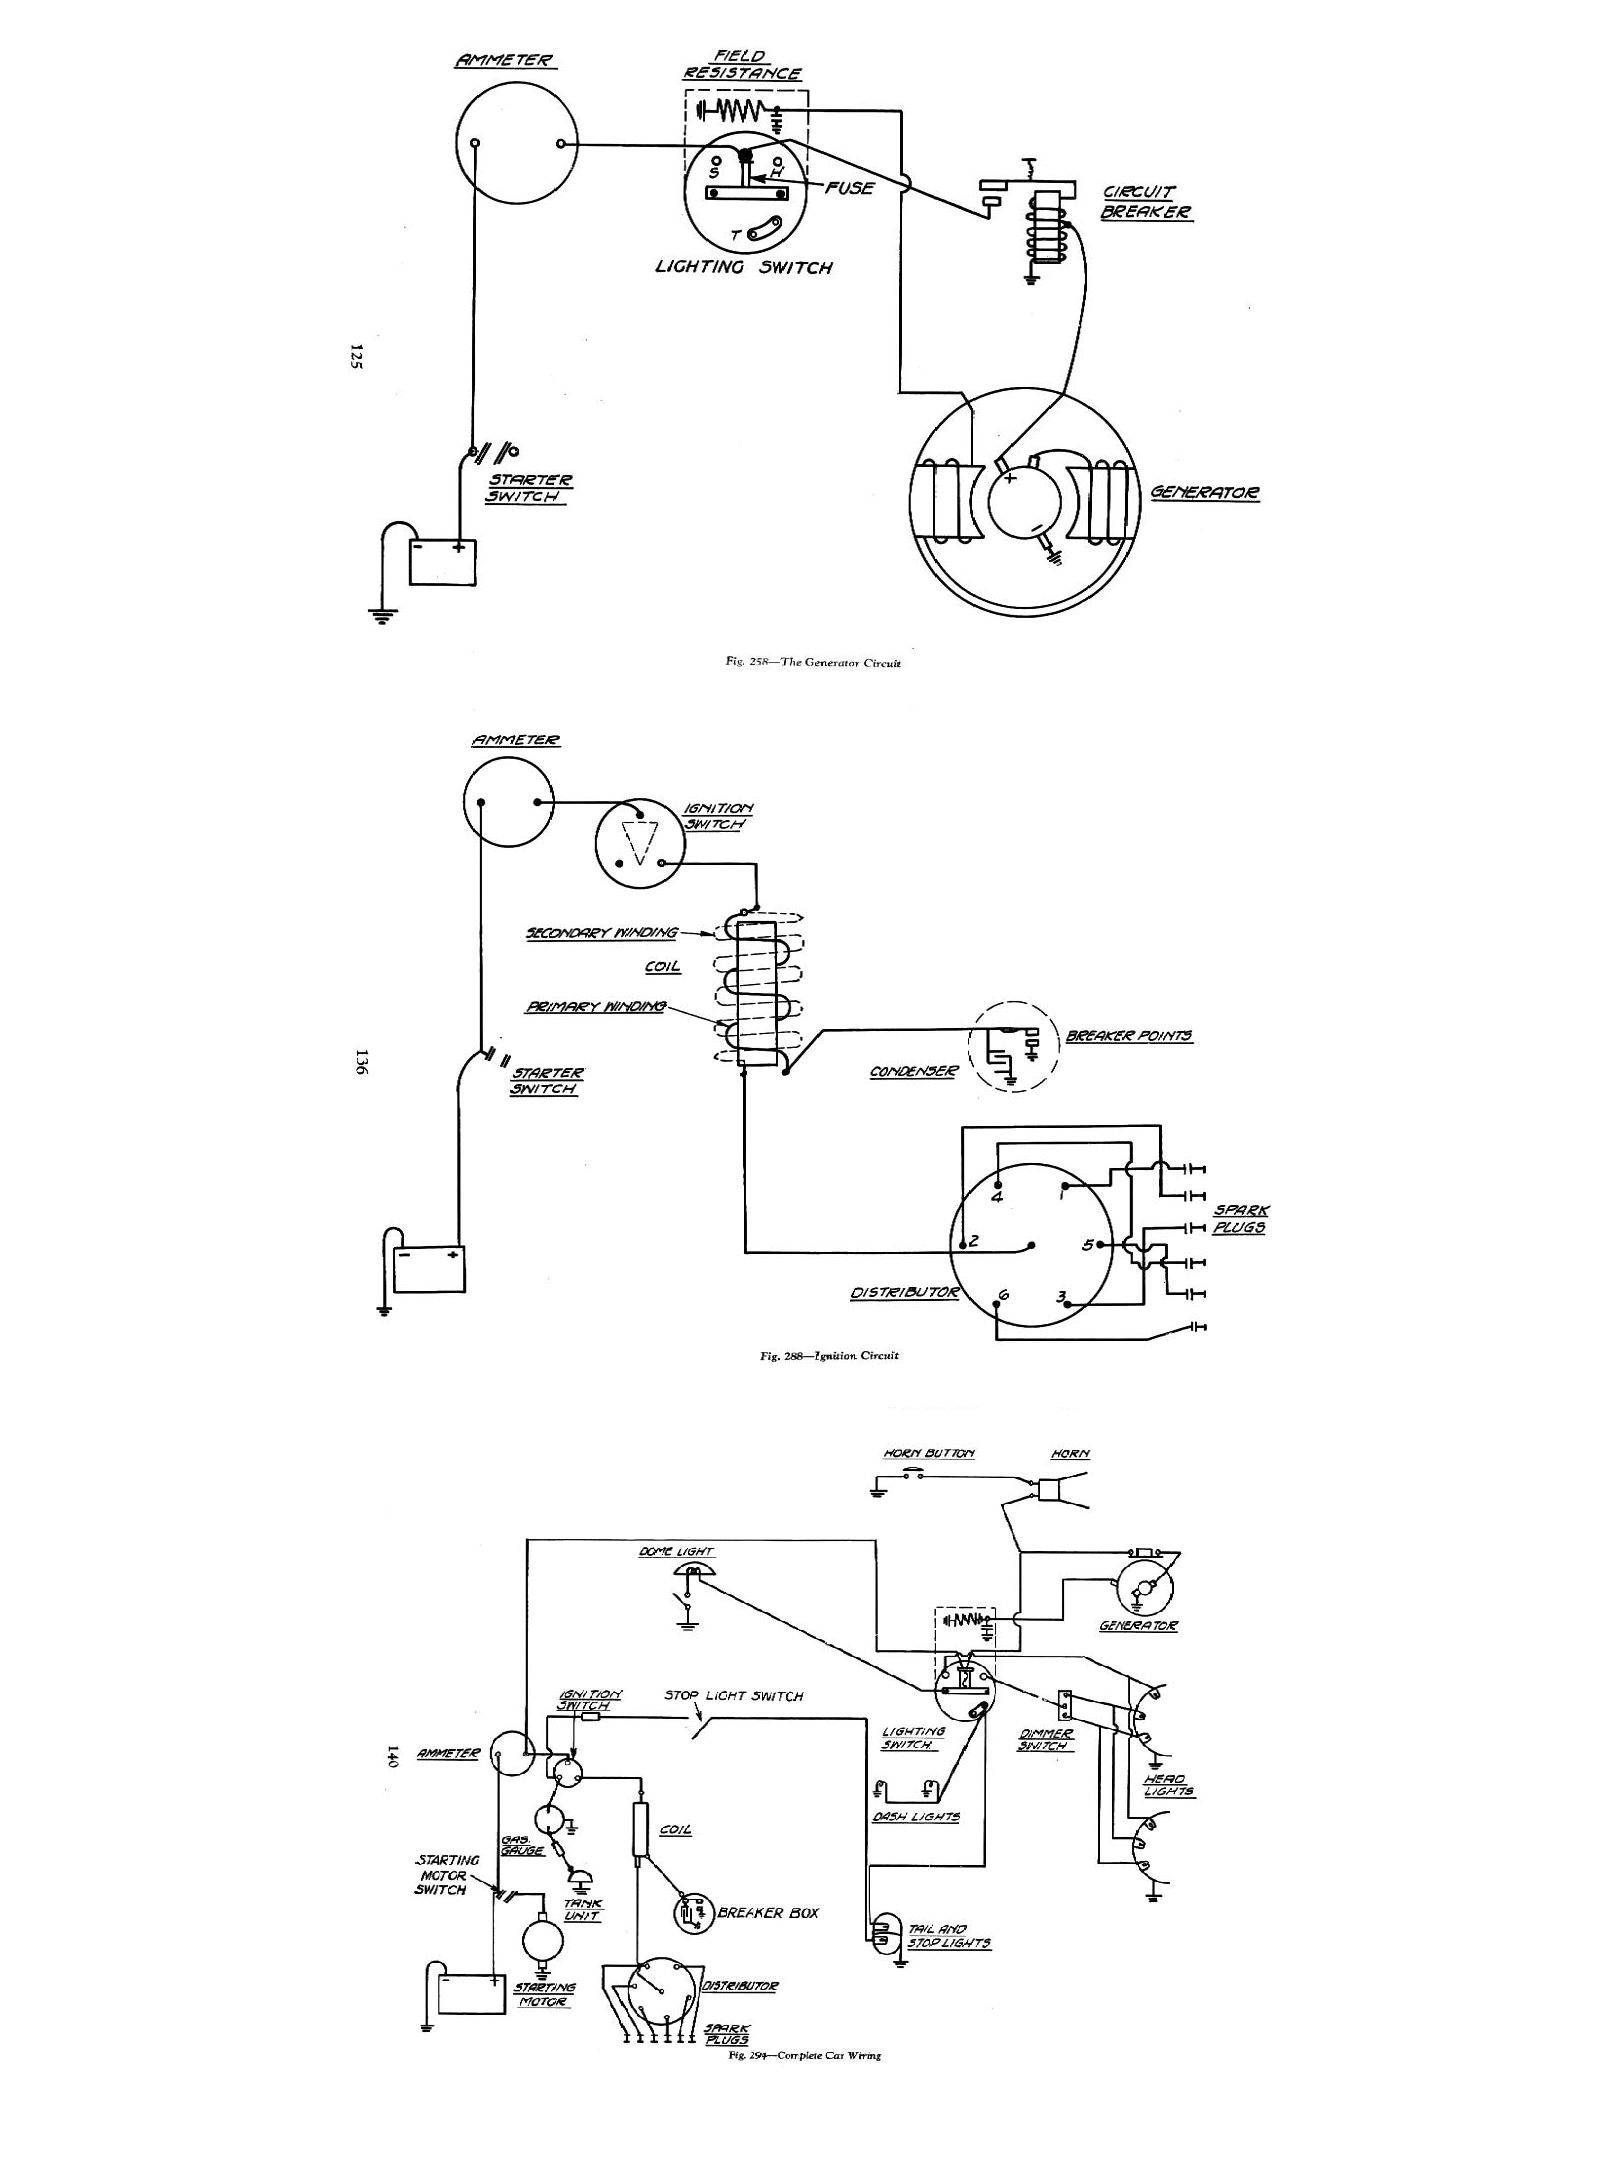 Marvelous Complete Electrical Wiring Diagram For 1934 Chevrolet Basic Wiring Cloud Eachirenstrafr09Org